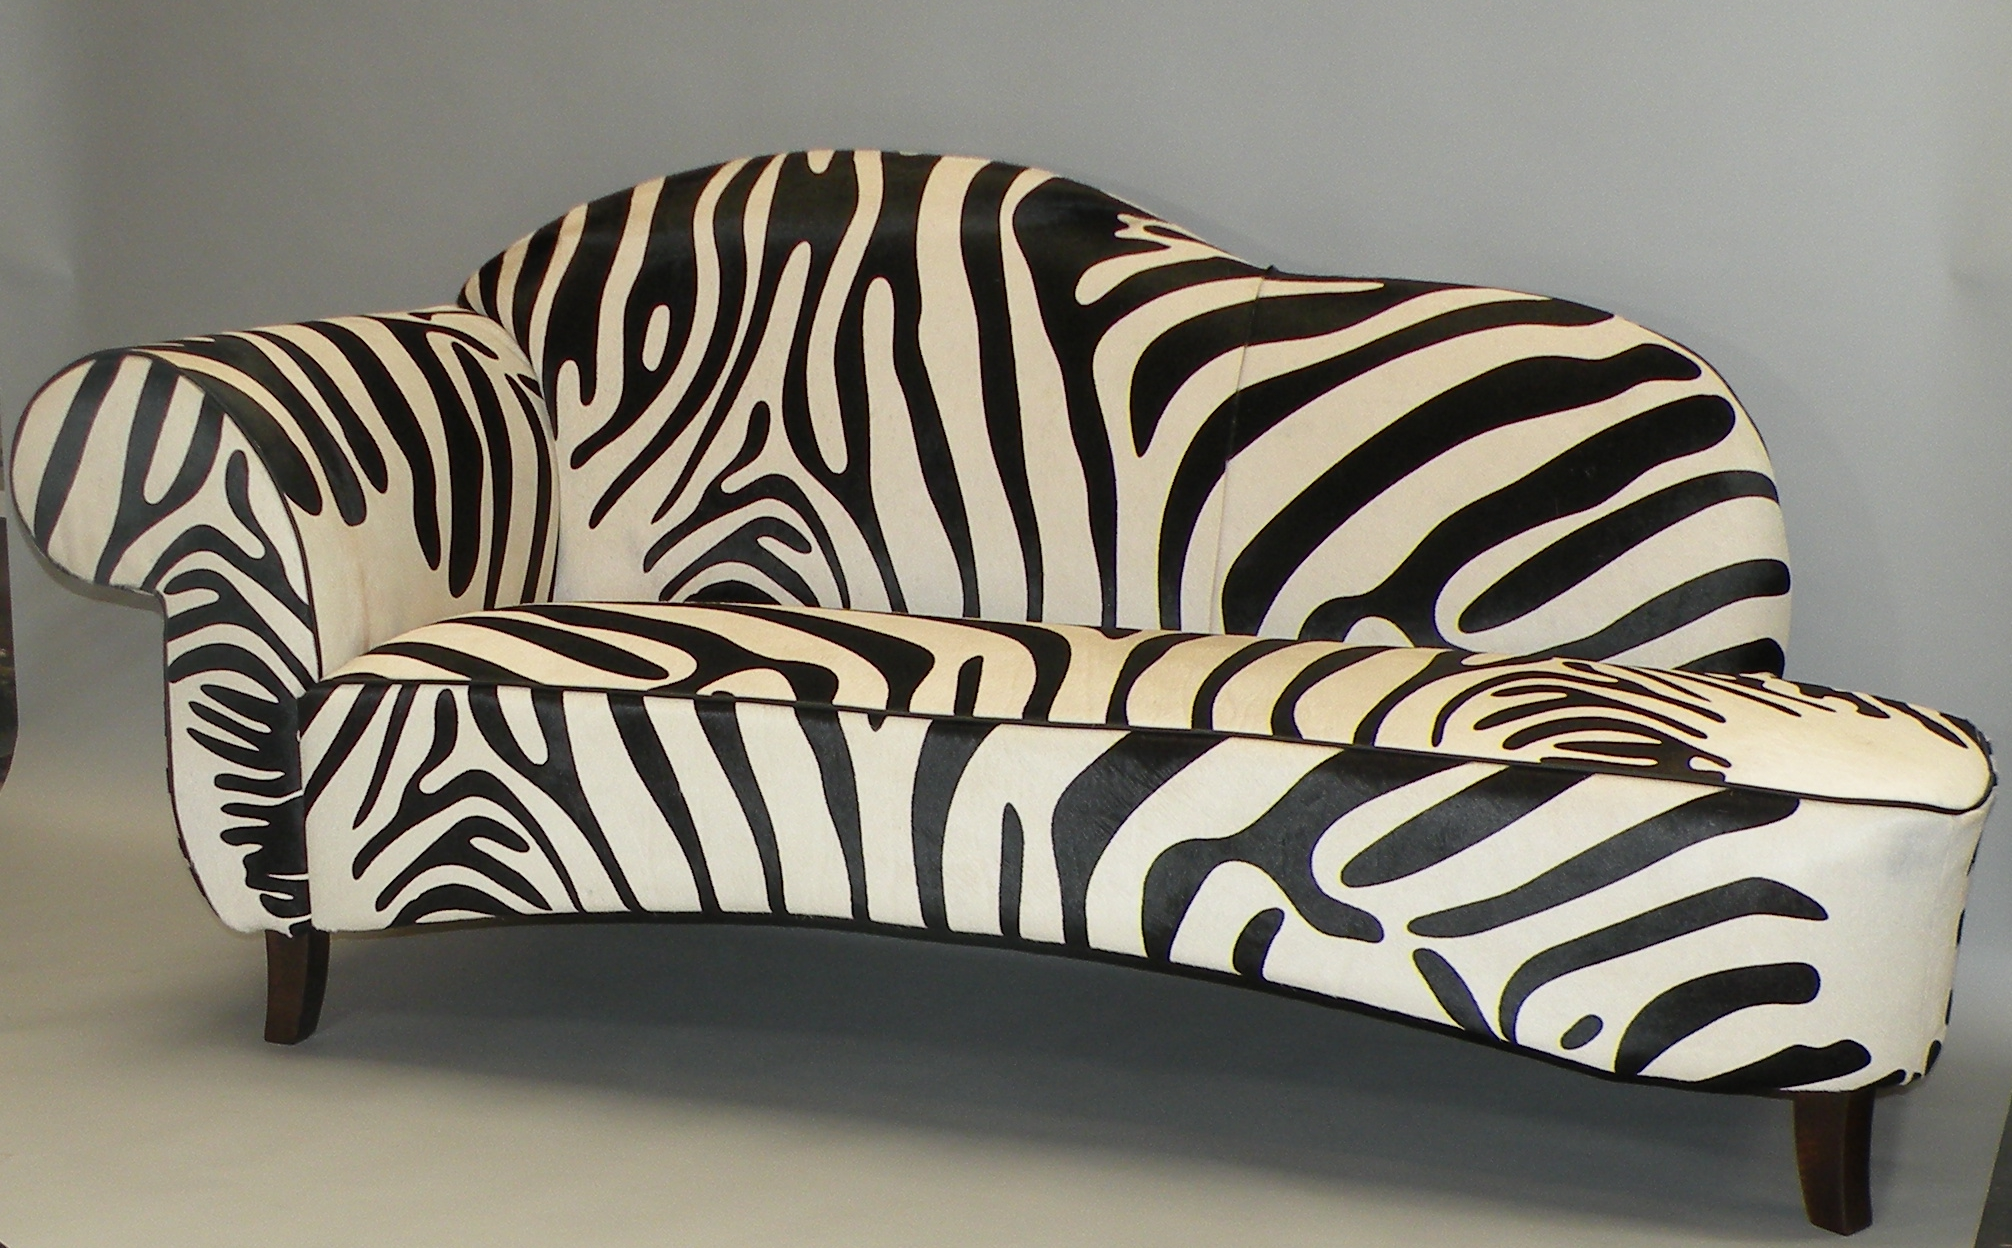 Unique zebra sofa marmsweb marmsweb for Zebra sectional sofa